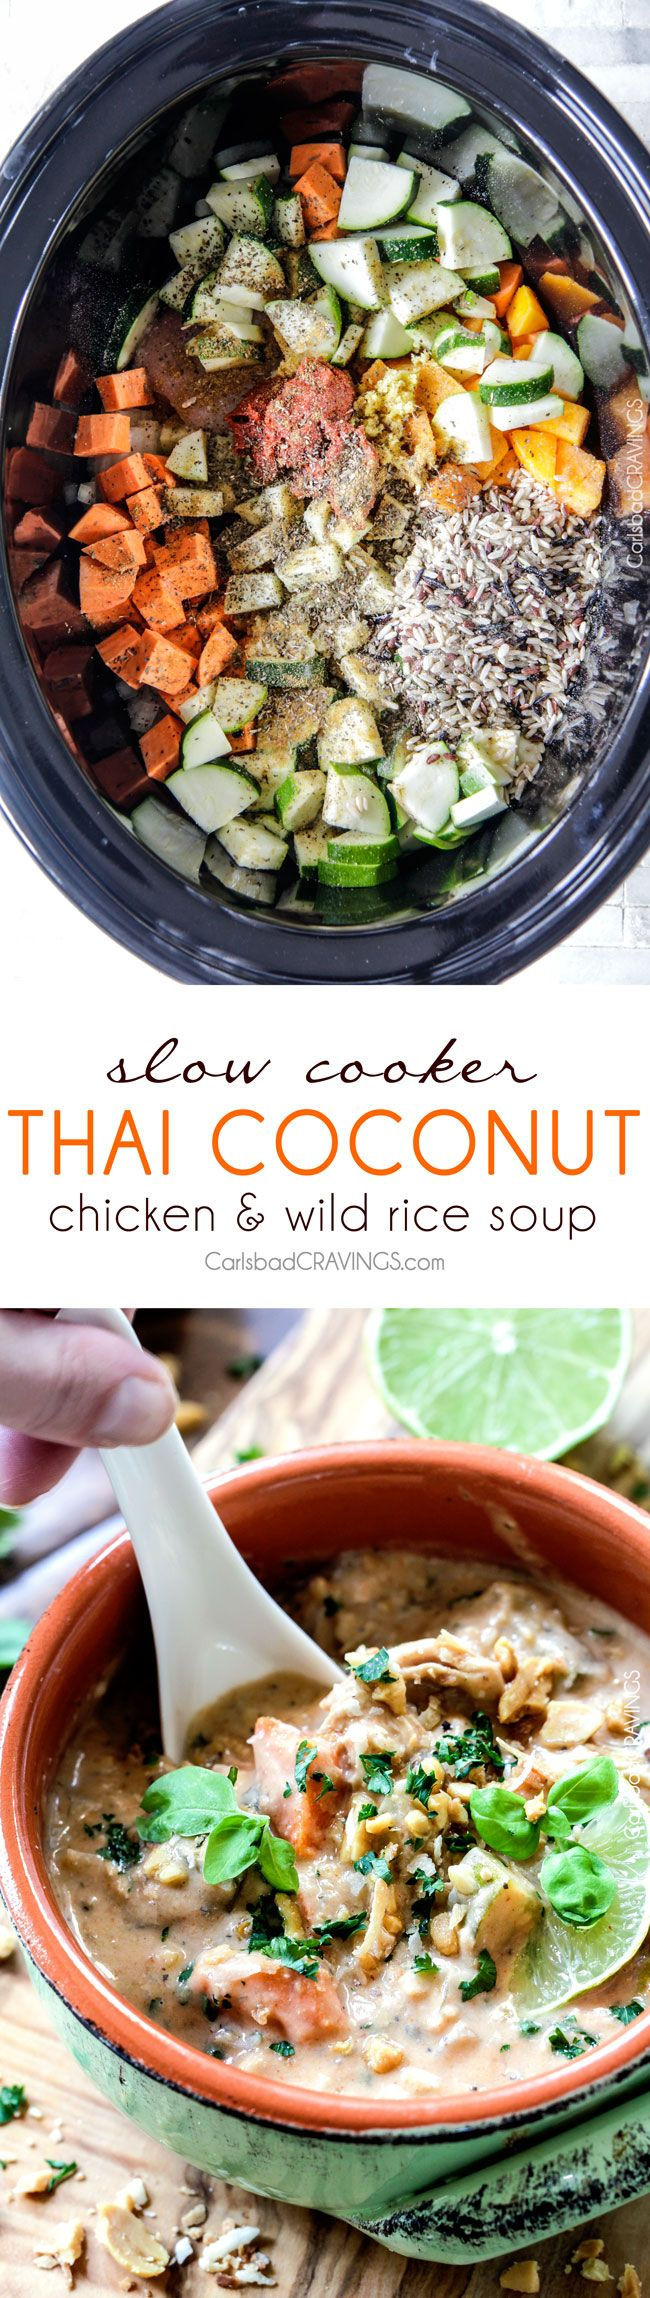 Slow Cooker Thai Coconut Chicken Wild Rice Soup loaded with customizable veggies in a creamy red curry peanut butter coconut broth is out is out of this world Delicious and couldn't be any easier! via @carlsbadcraving